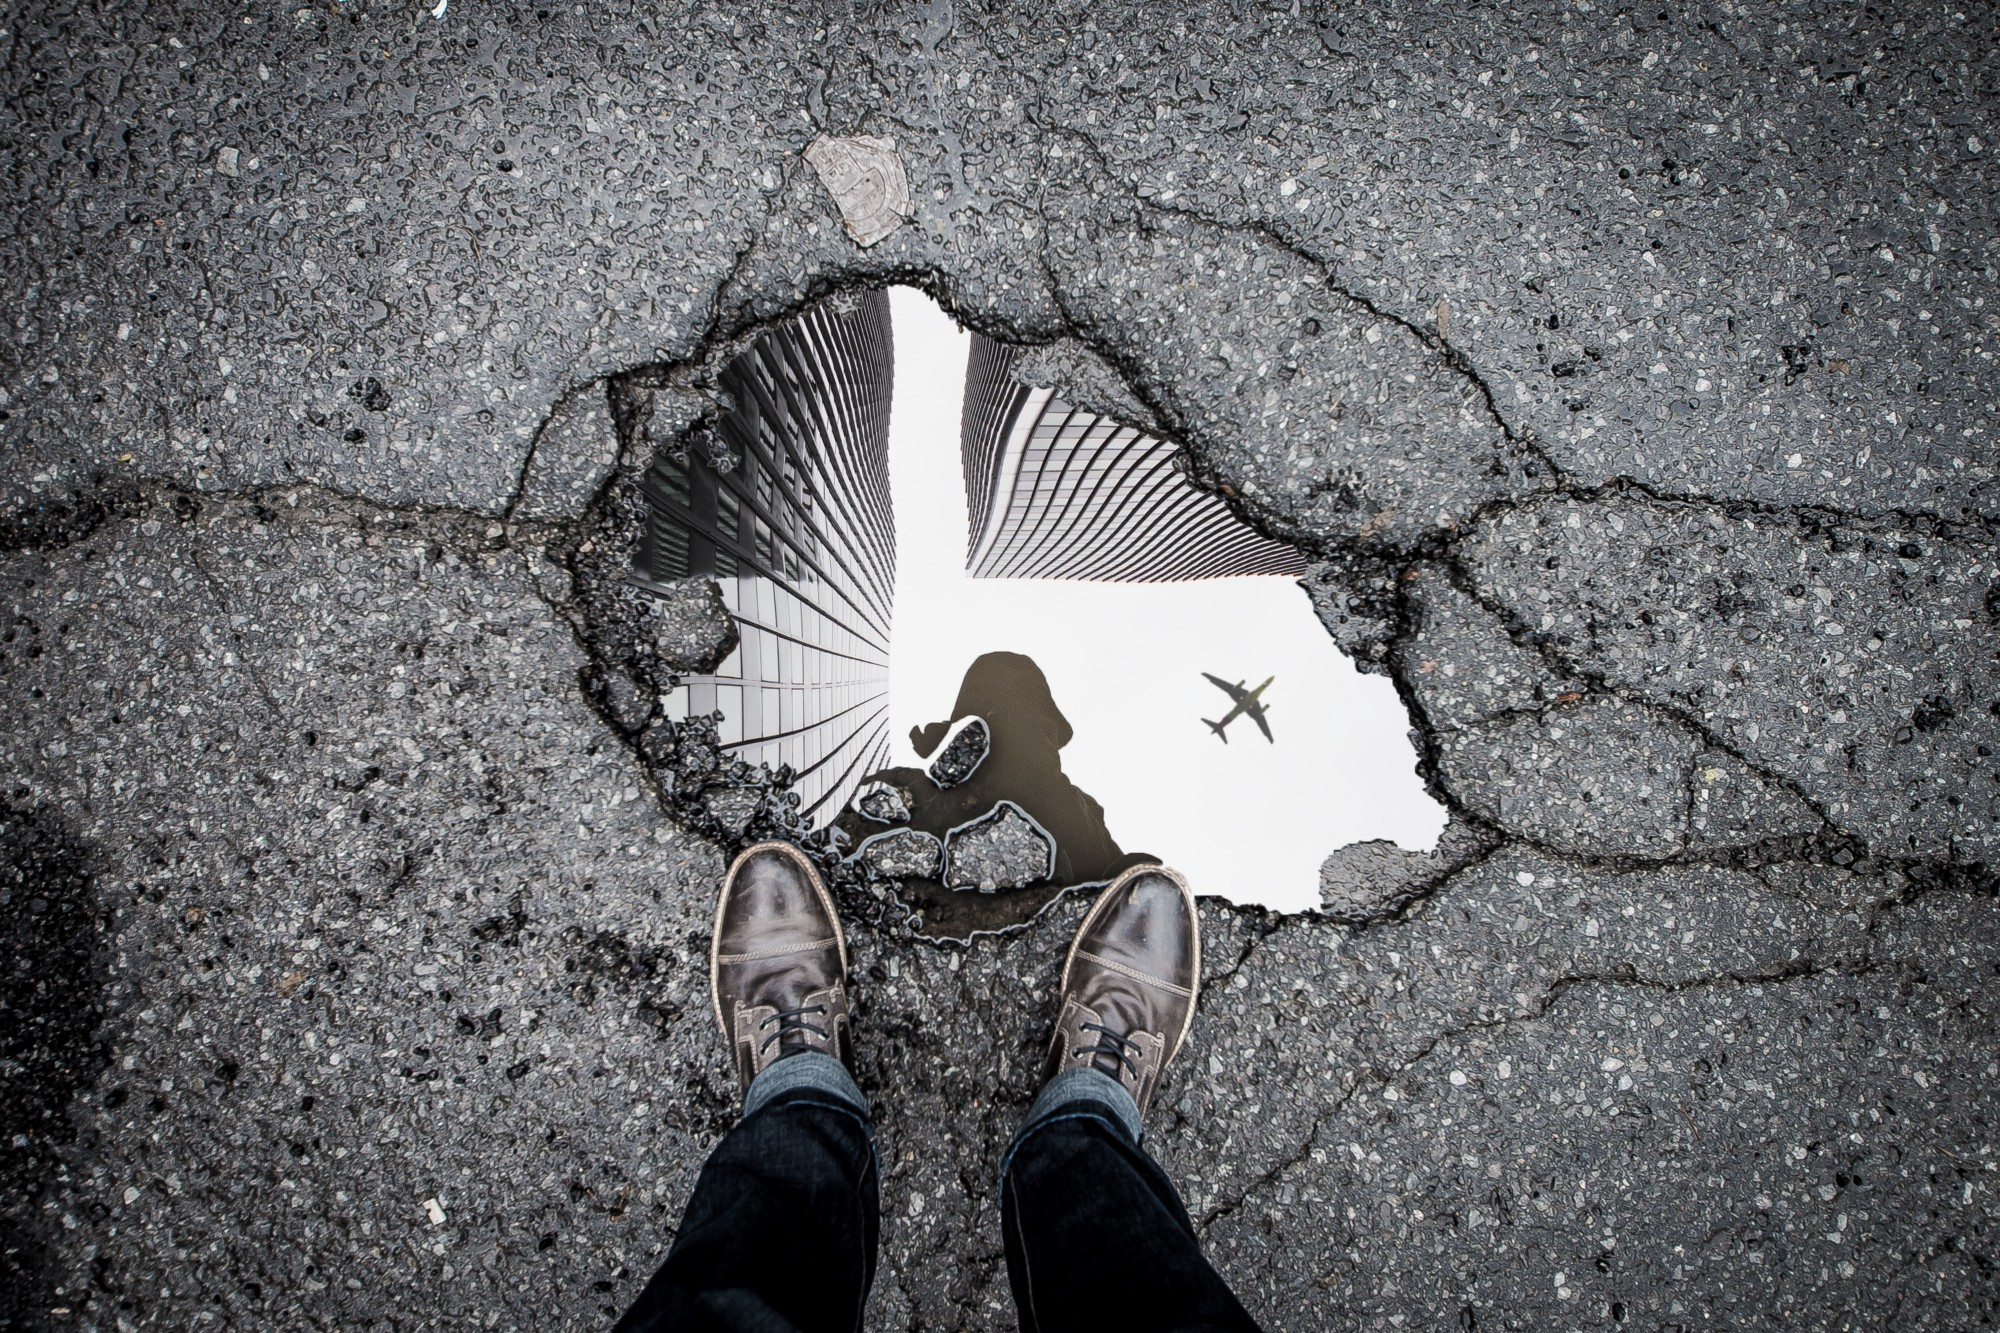 A person's feet near a glassy puddle of water in pavement. The person's reflection is visible in the puddle.